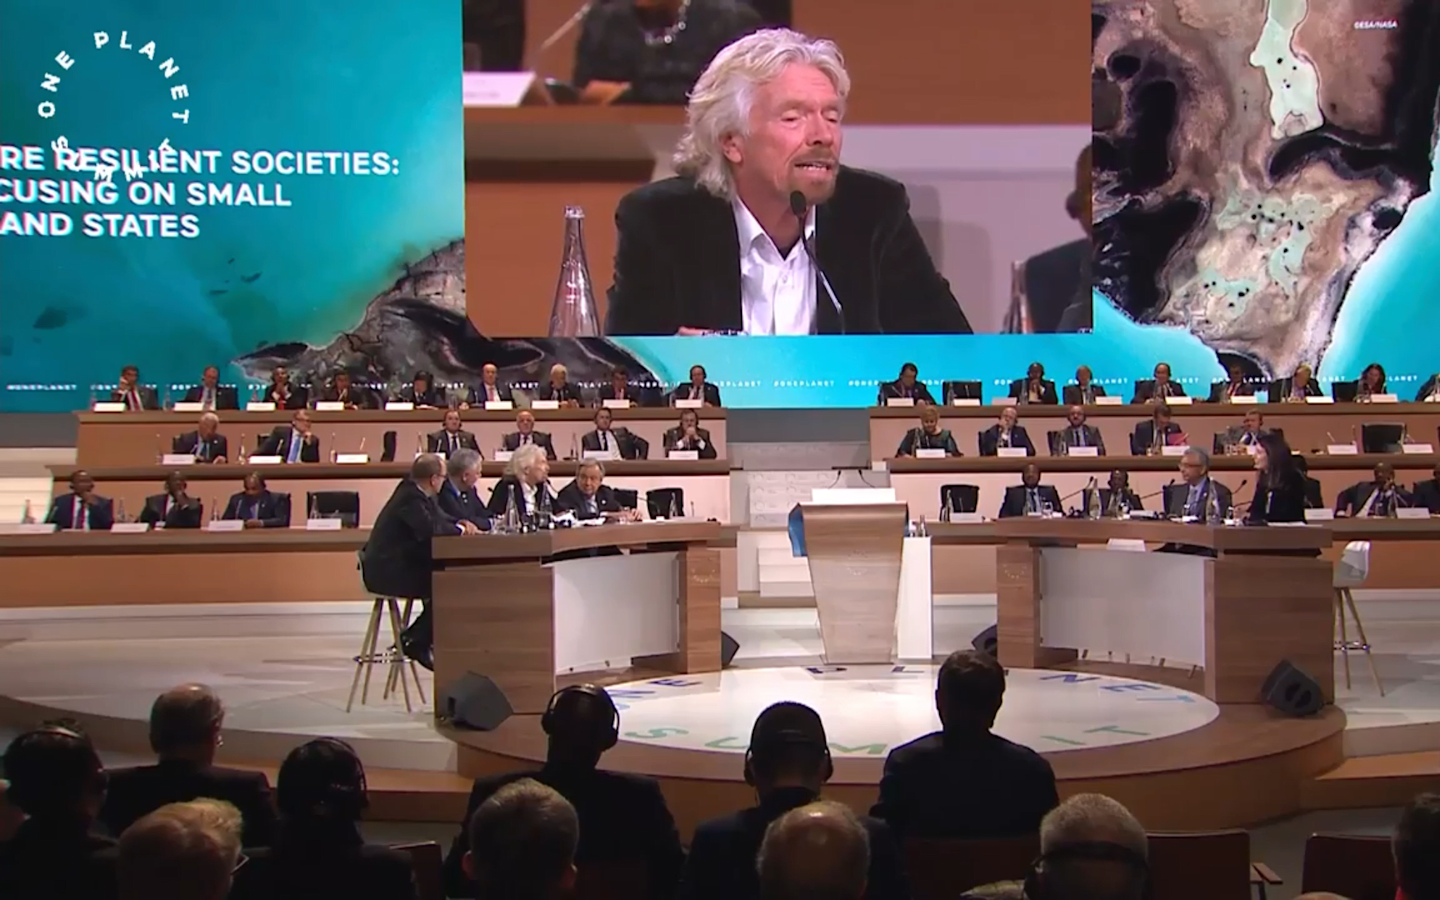 Several images of the One Planet Summit. One is of Richard Branson speaking, one is of the attendees sitting at tables, one is a meteorological image